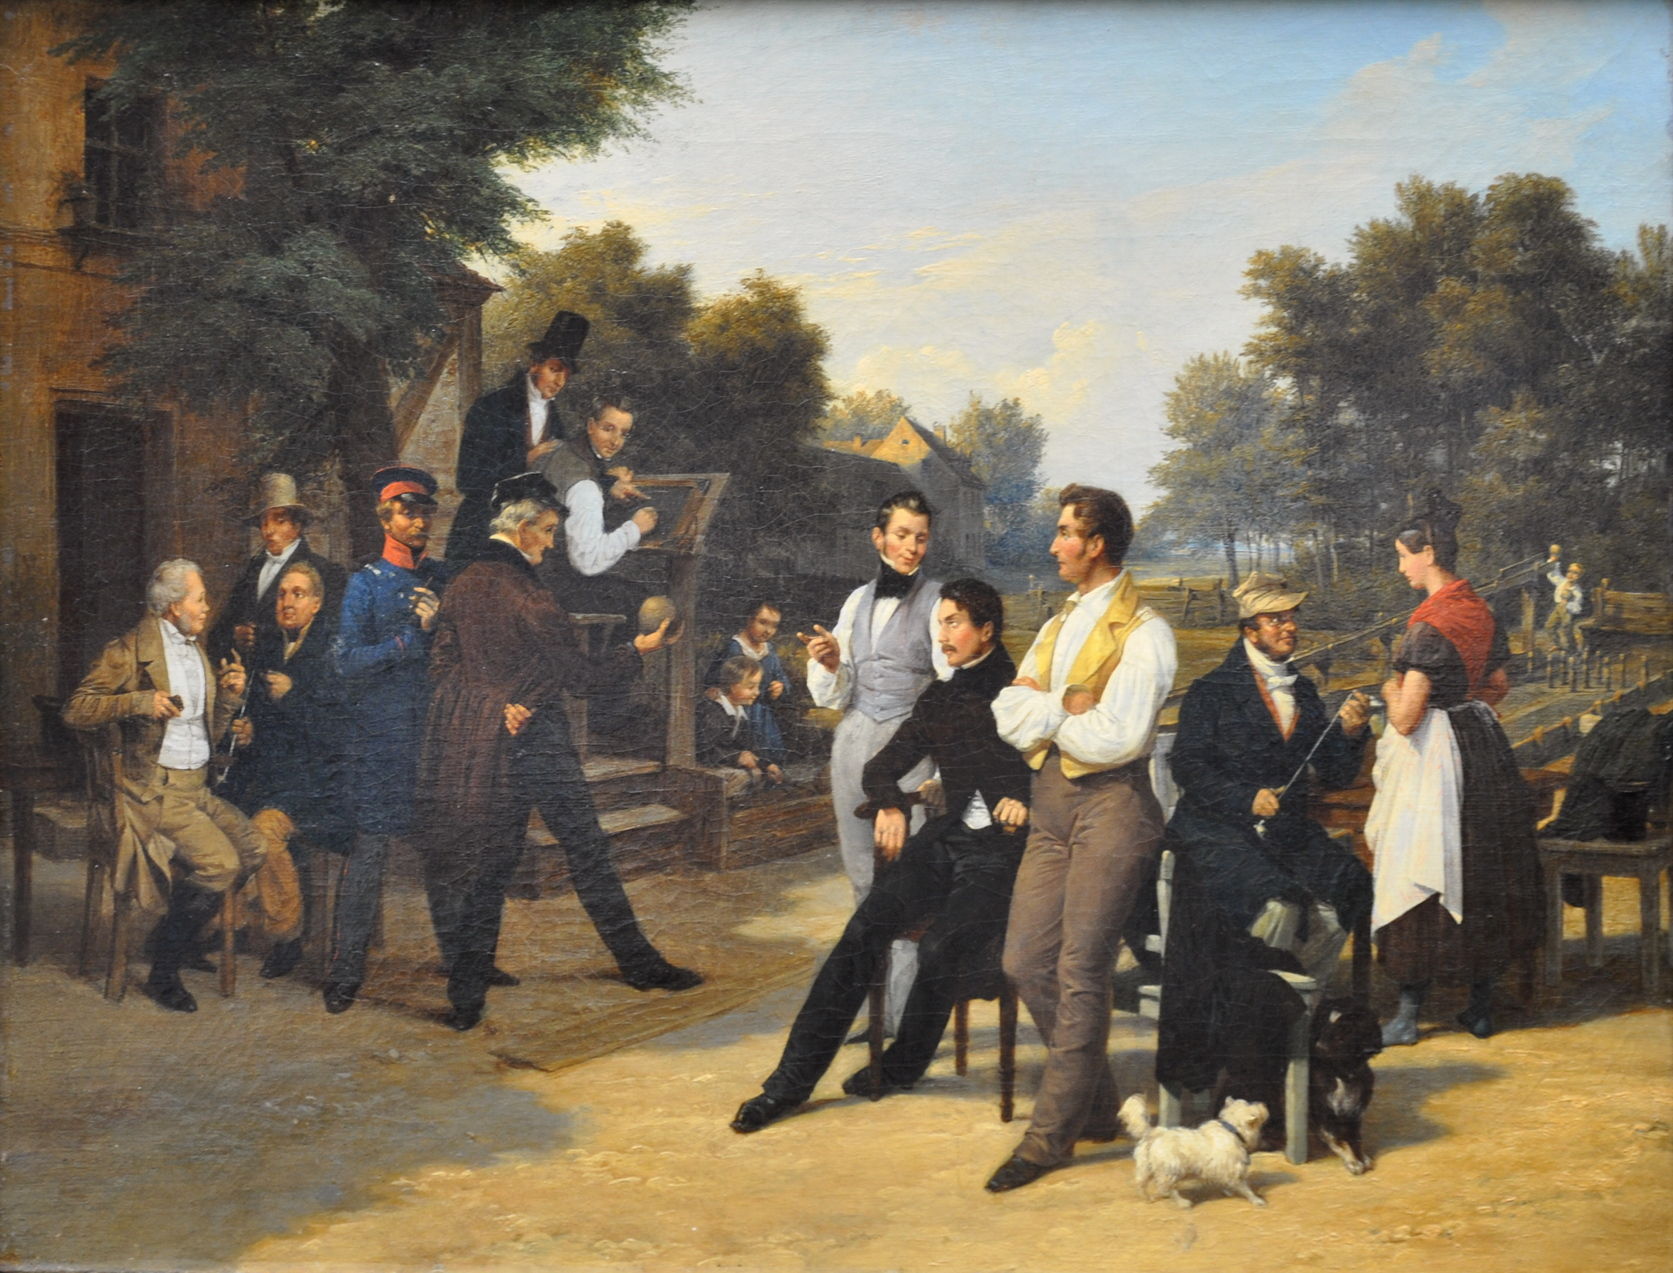 Meyerheim, Friedrich Eduard, <em>The Skittles Gathering.</em>